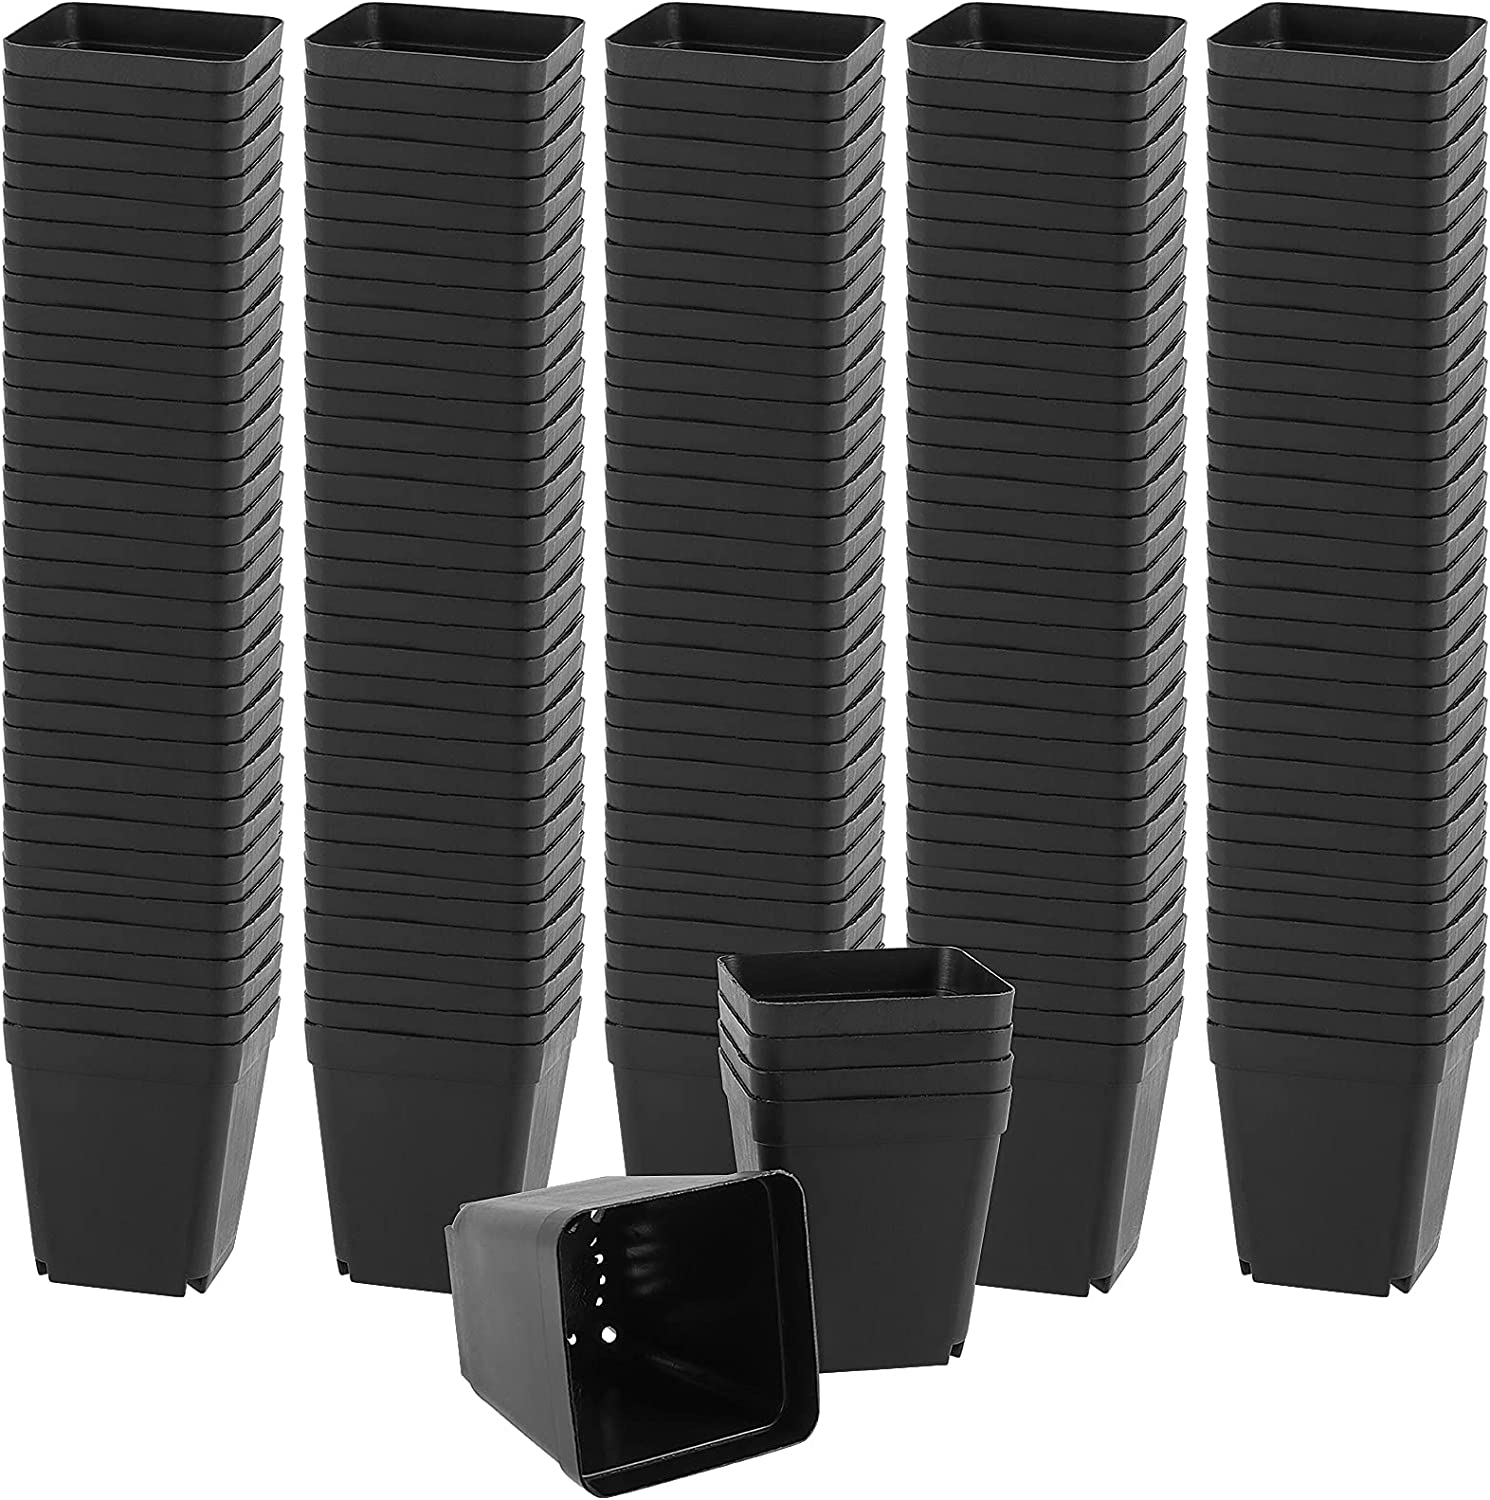 HAKZEON 120 PCS 2.7 Inches Plastic Square Nursery Pot with Drainage Holes, Black Small Plant Flower Starting Pots, Durable Garden Greenhouse Nursery Pots for Transplanting Seedlings